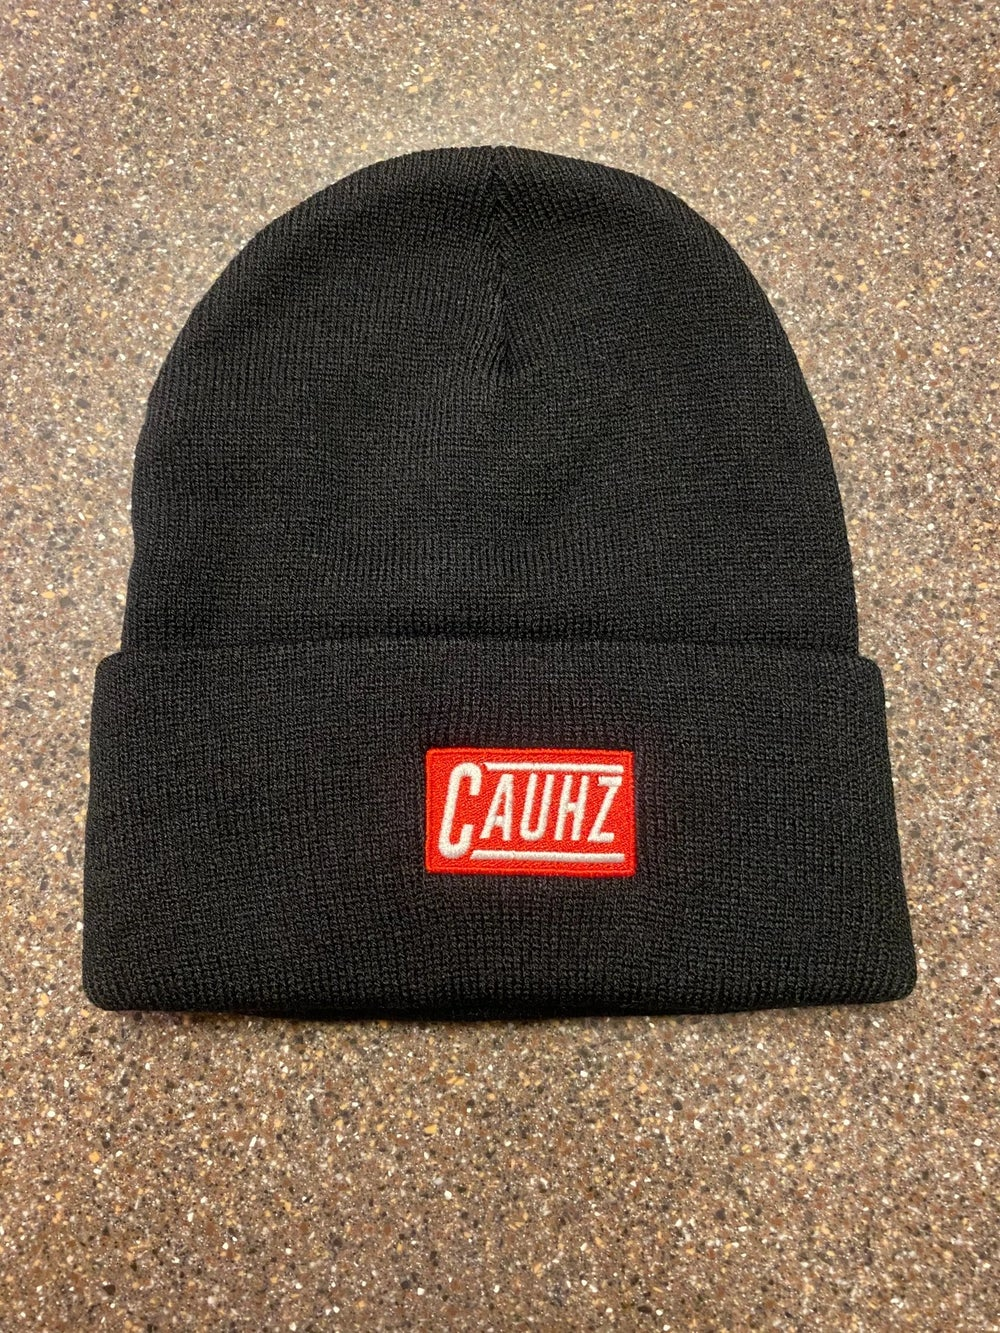 CAUHZ™️ BLACK LOGO STITCHED BEANIES